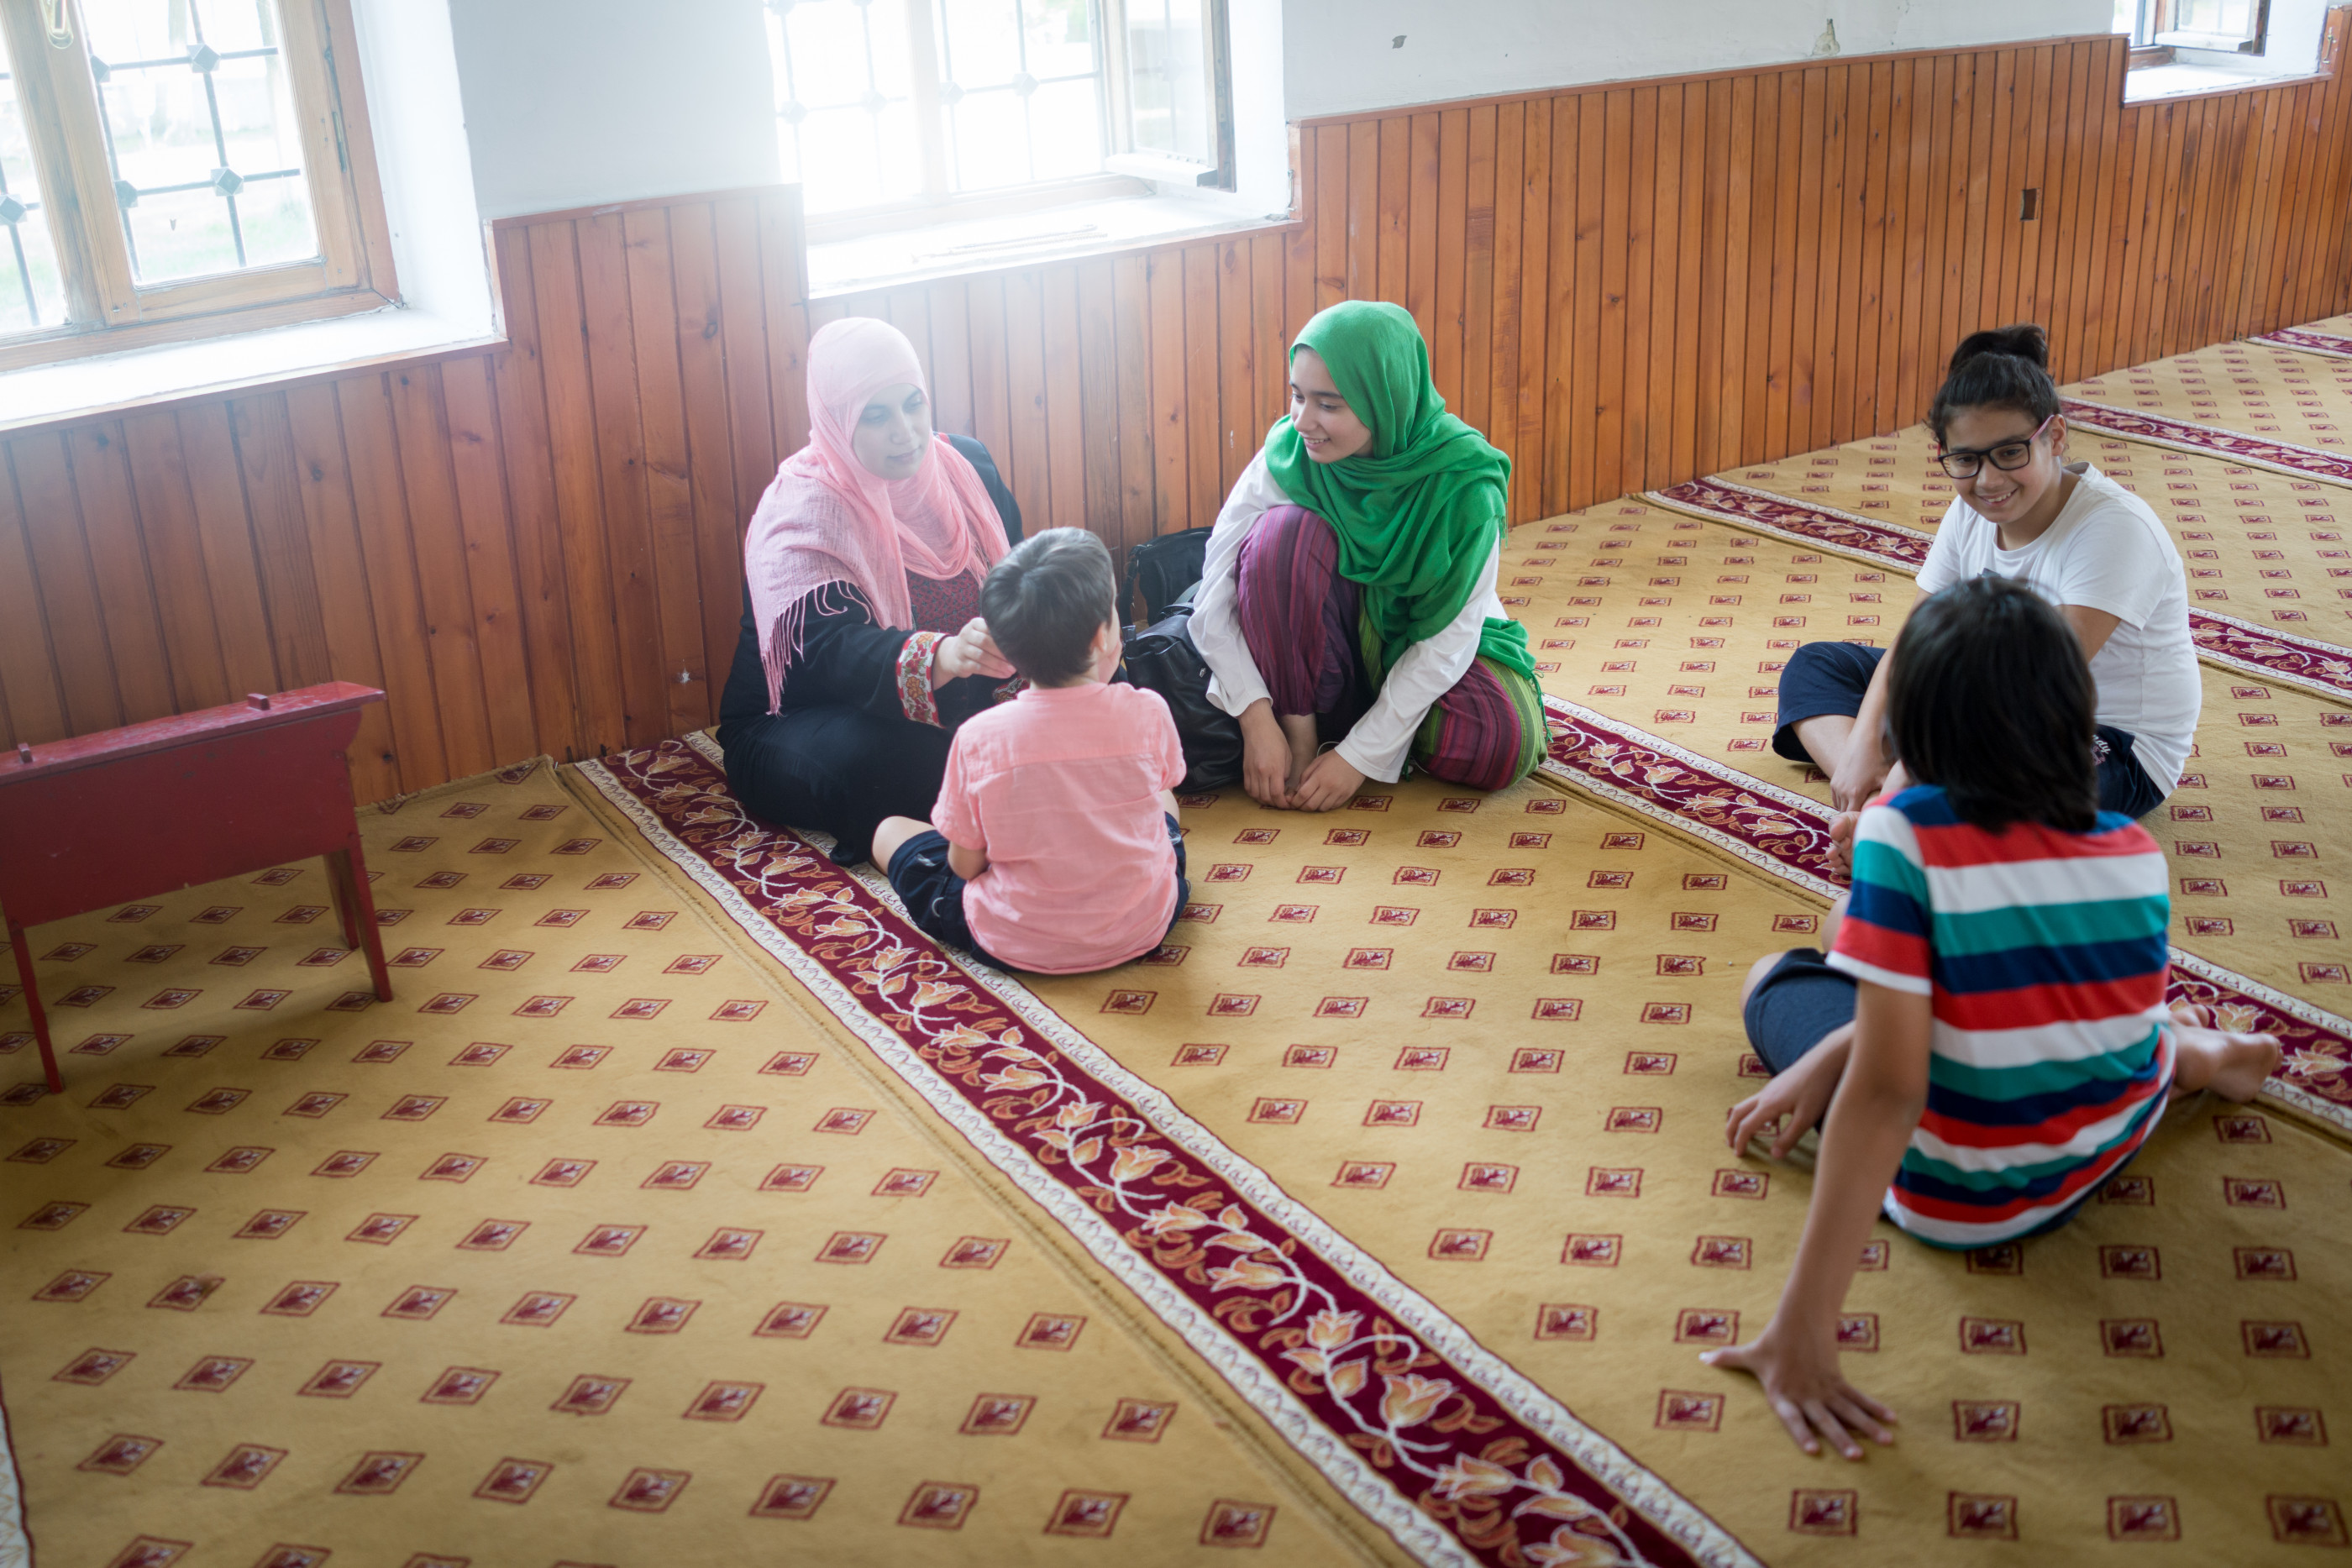 Muslim family in mosque